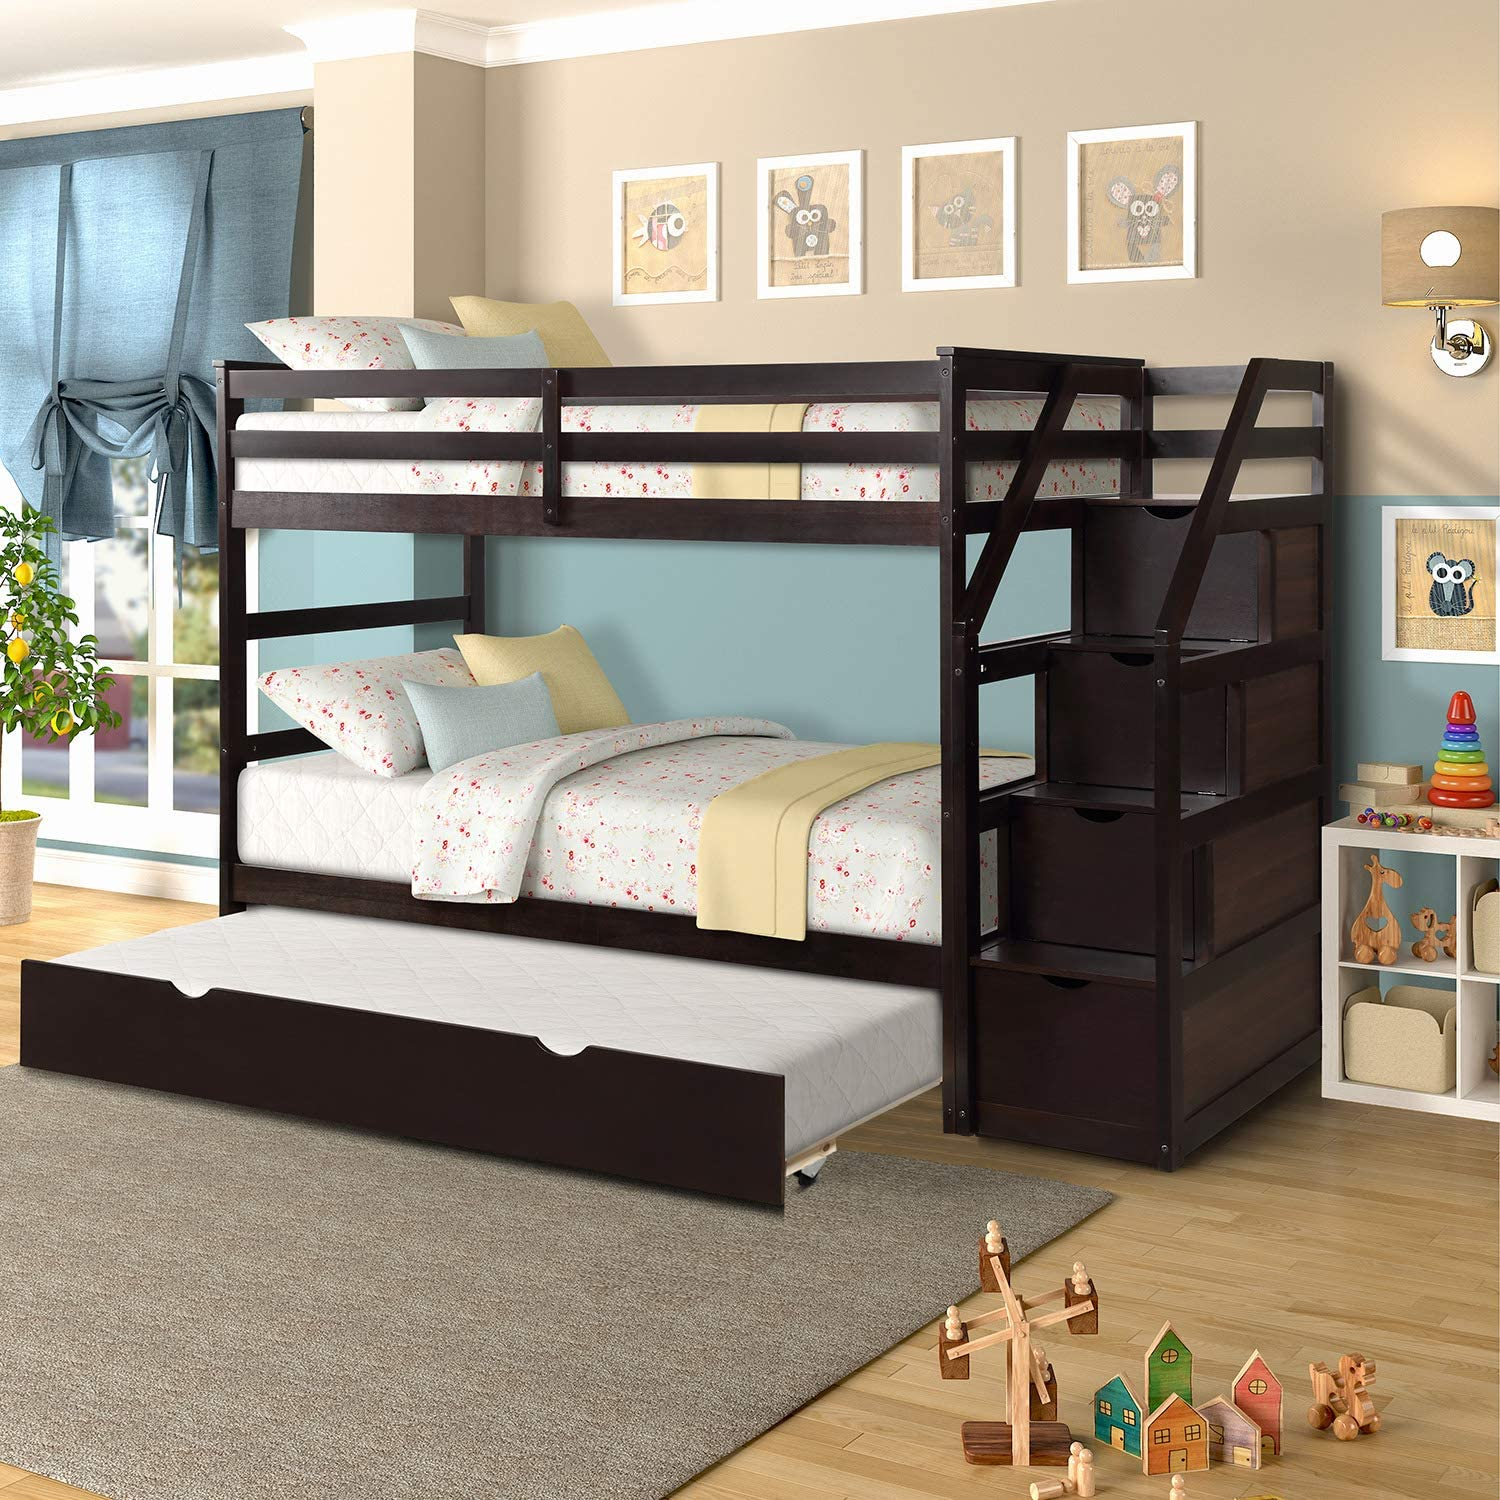 Amazon Com Merax Solid Wood Twin Over Twin Bunk Bed Trundle Bunk Bed With 3 Storage Drawers Staircase And Safety Guard Rail For Boys Girls Kids Teens And Adults Espresso Kitchen Dining